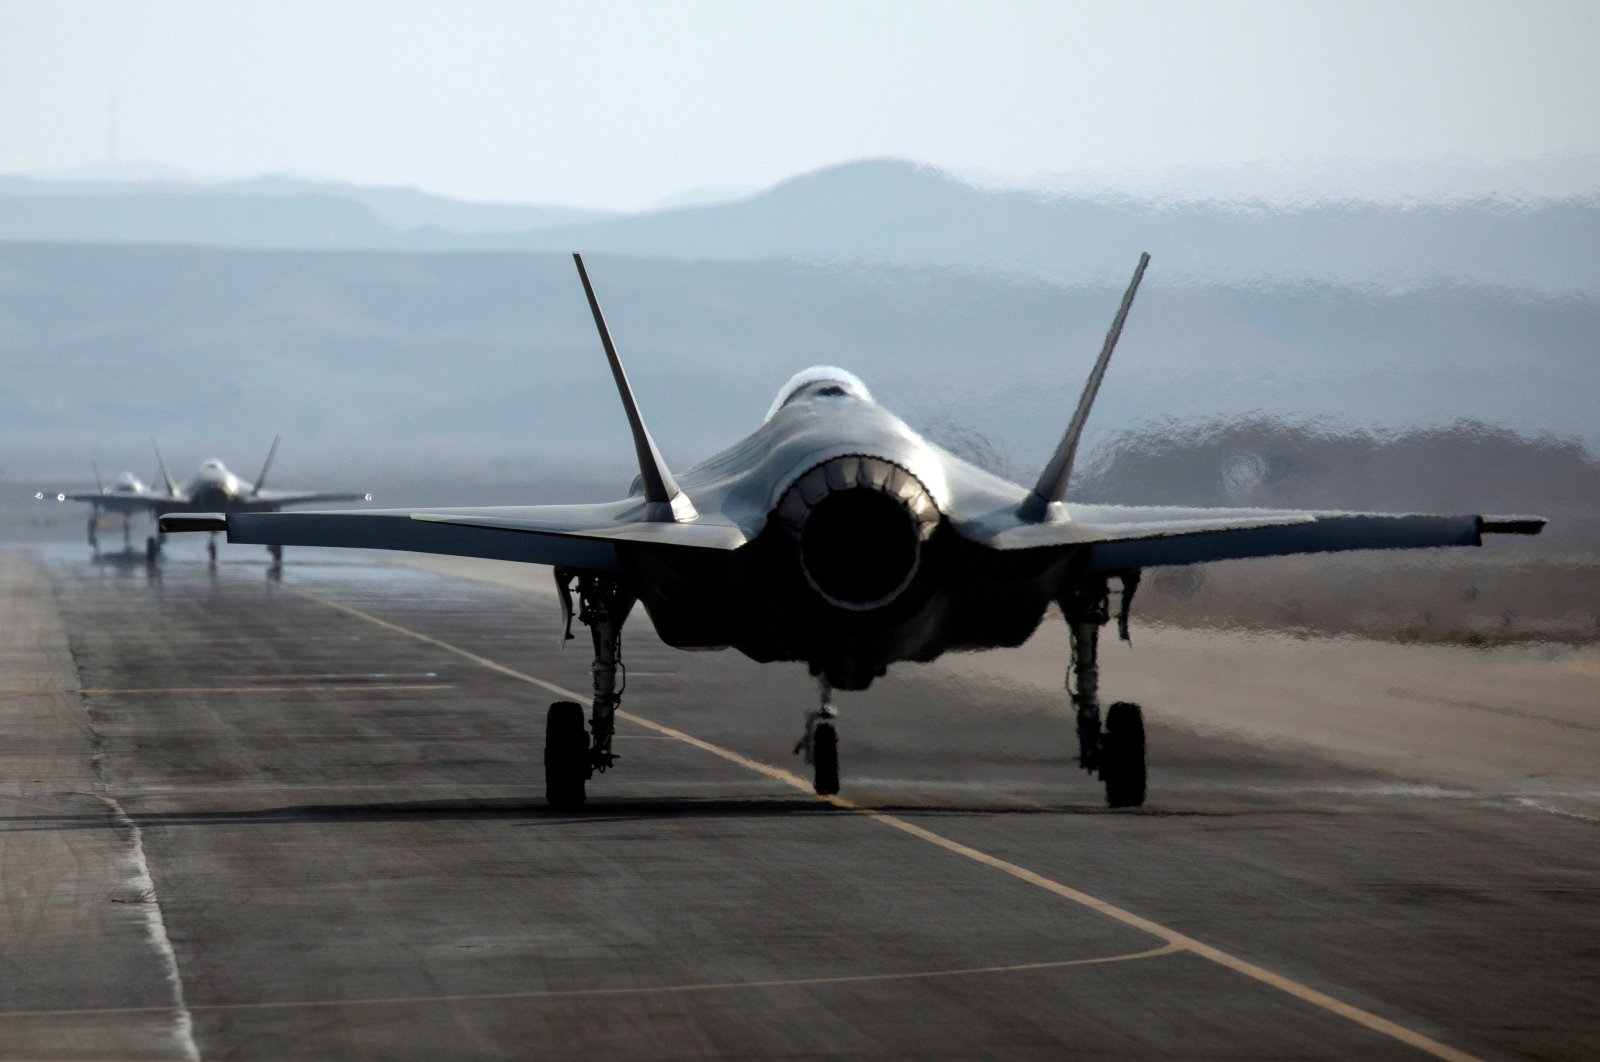 """An Israeli F-35 aircraft is seen on the runway during """"Blue Flag,"""" an aerial exercise hosted by Israel with the participation of foreign air force crews, at Ovda military air base, southern Israel, Nov. 11, 2019. (Reuters Photo)"""